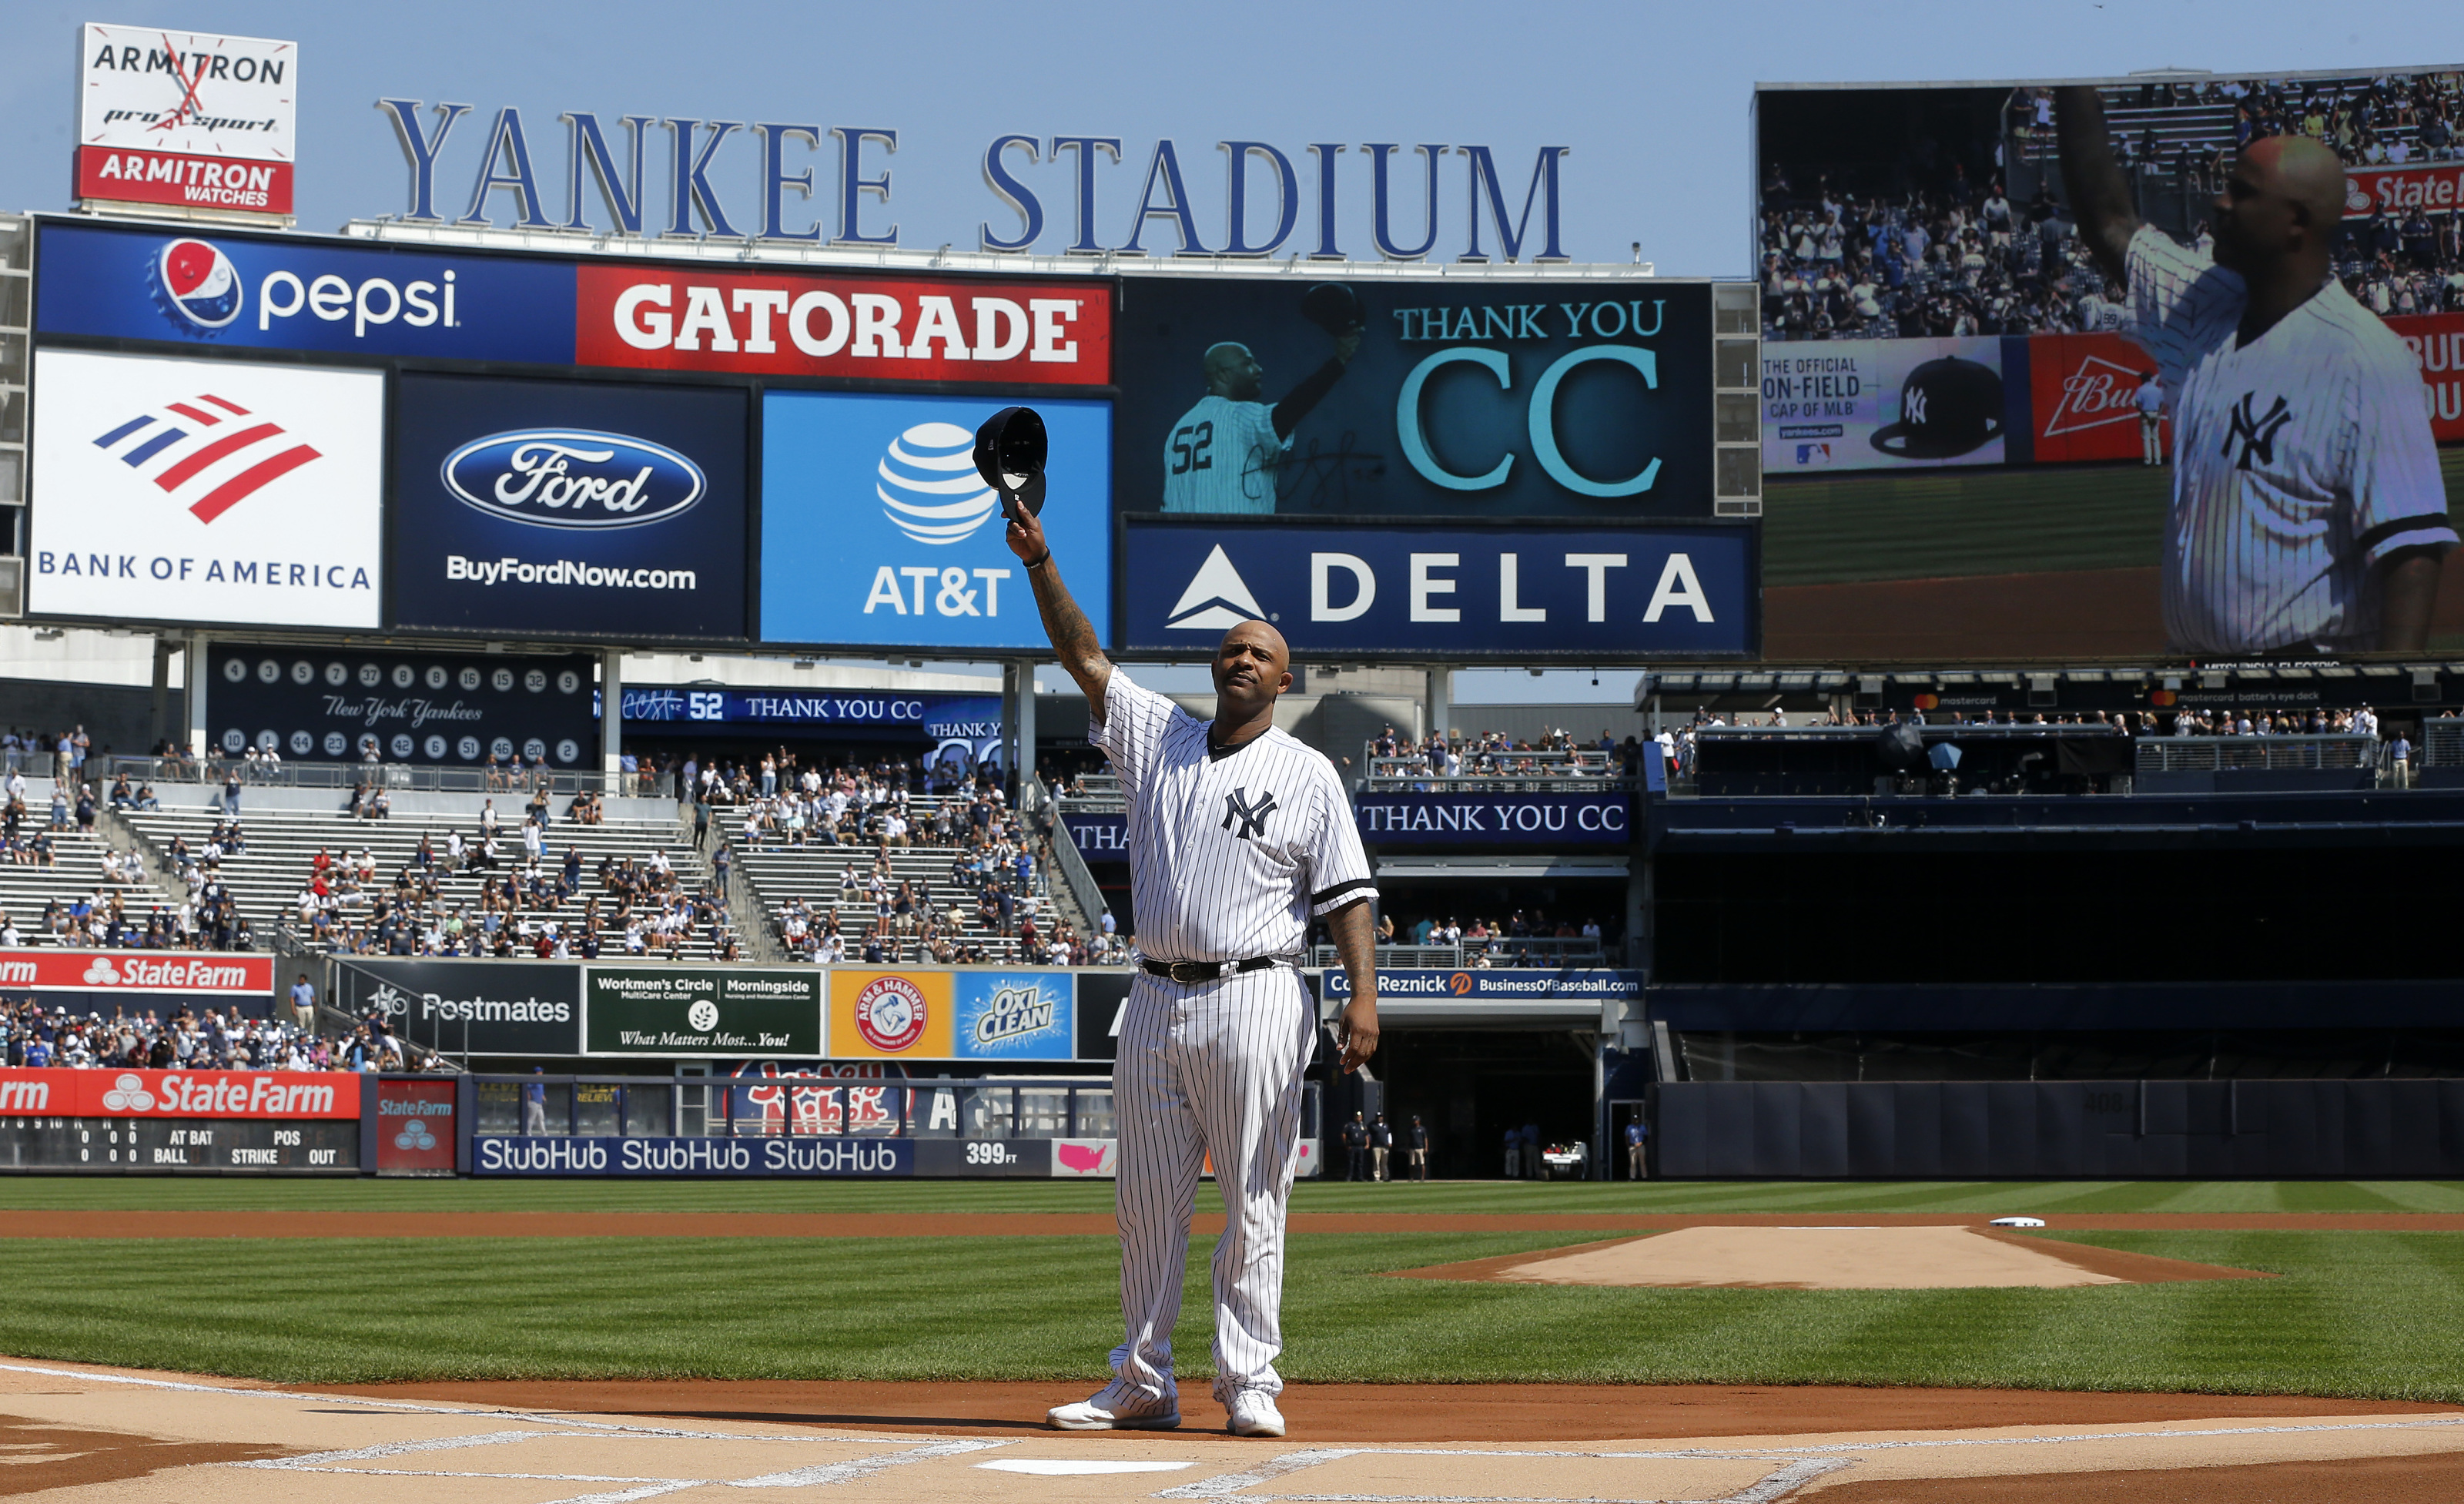 Yankees: Brian Cashman's Top 5 free agent pitcher signings